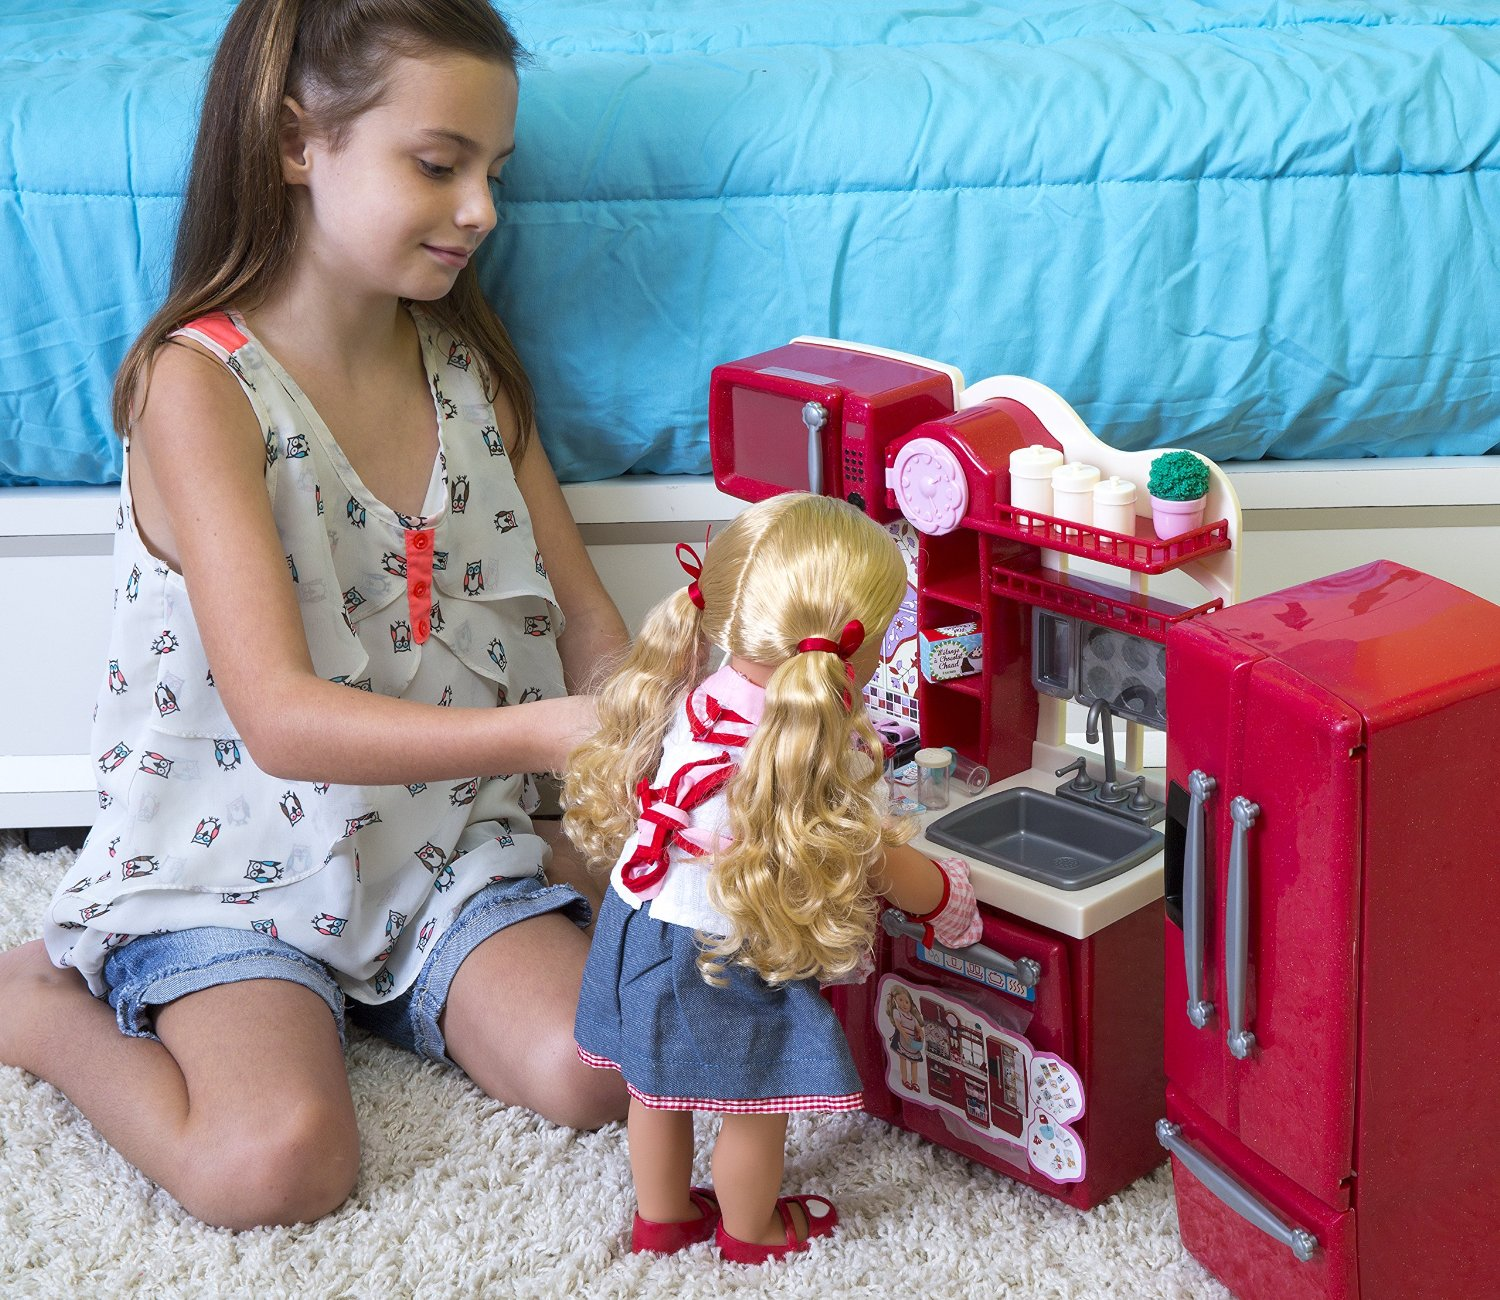 Missys Product Reviews Our Generation Jenny And The